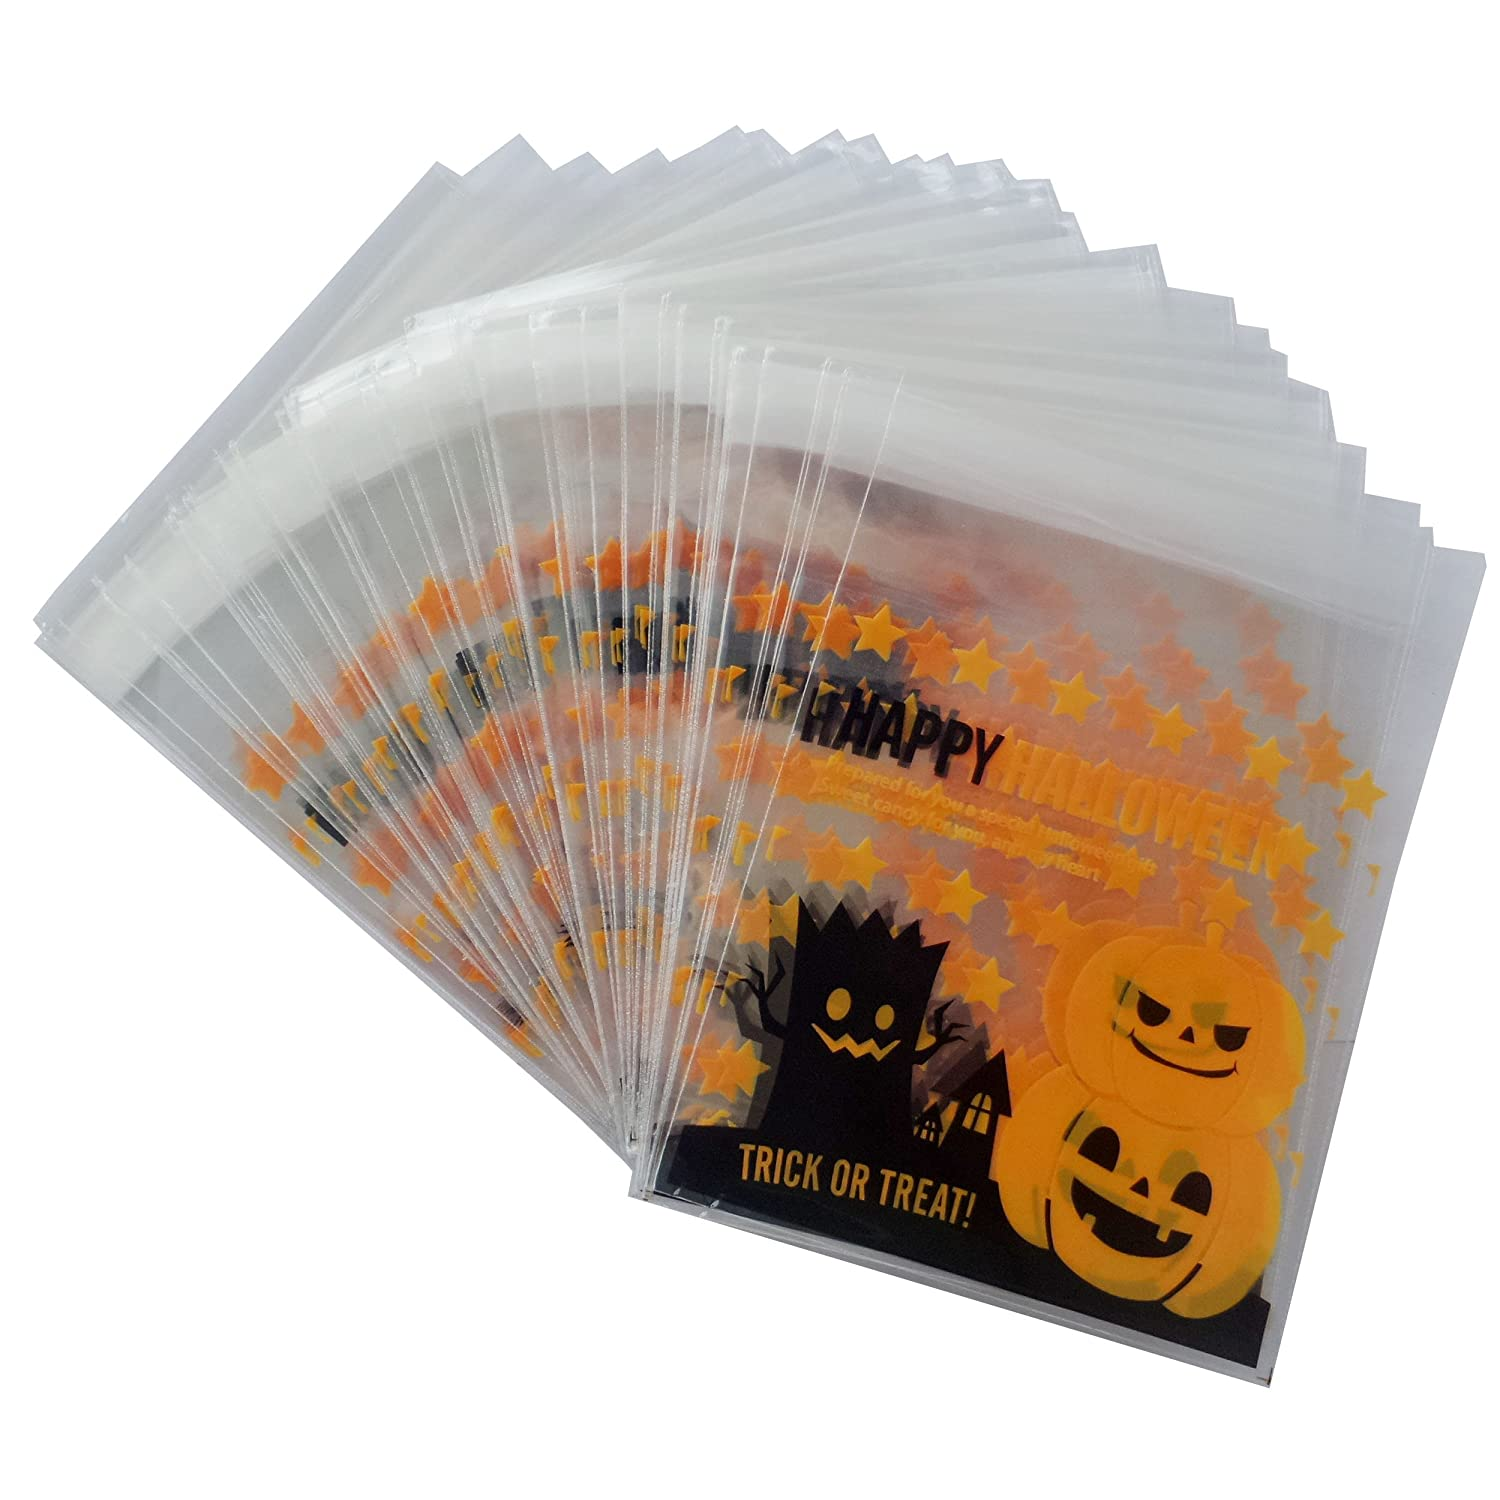 YunKo 100pcs Happy Halloween Pumpkin Cookie Packaging Self-Adhesive Plastic Bags for Biscuits Package Cz006